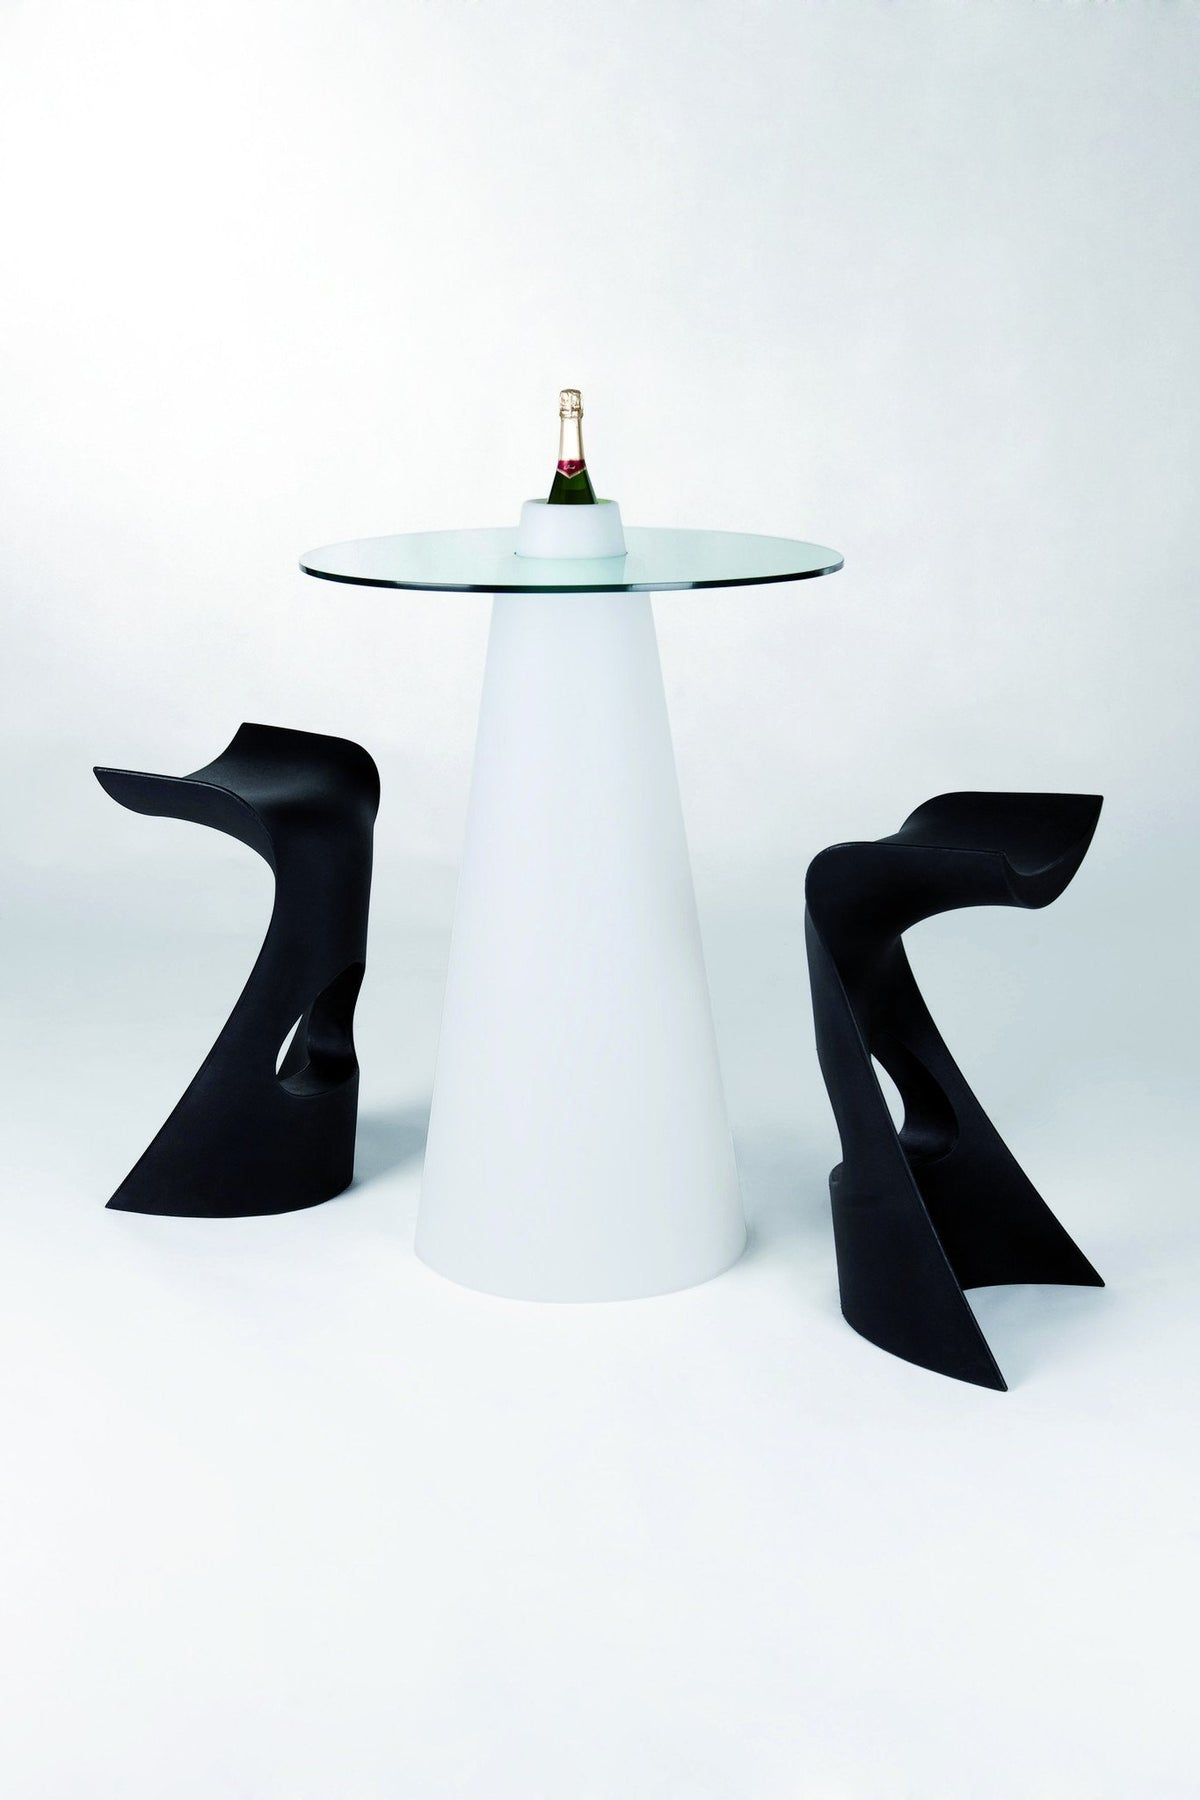 Peak Poseur Table-Slide-Contract Furniture Store